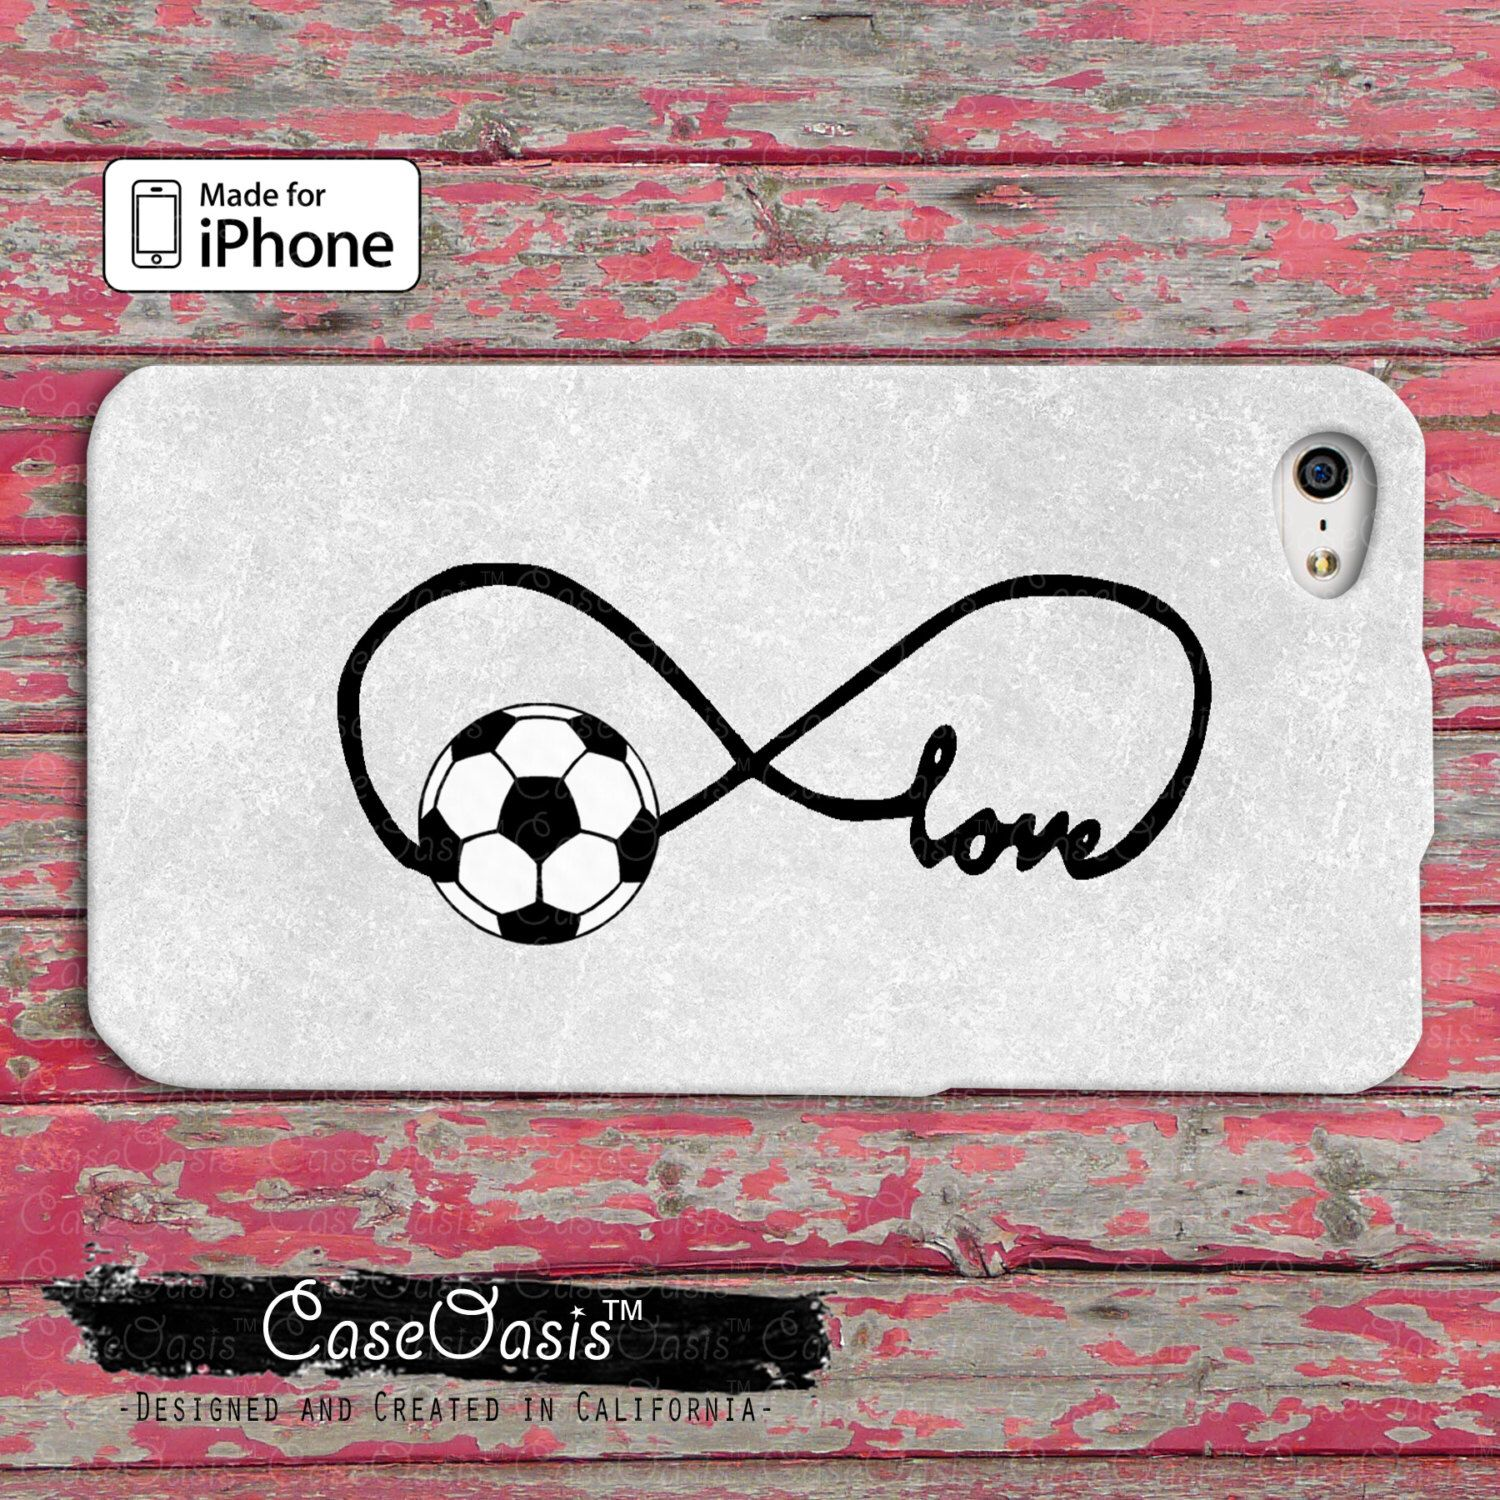 Soccer love infinity symbol tumblr inspired cute iphone 5 5c 5s case soccer love infinity symbol tumblr inspired cute iphone 5 5c 5s case iphone 6 and 6 biocorpaavc Choice Image